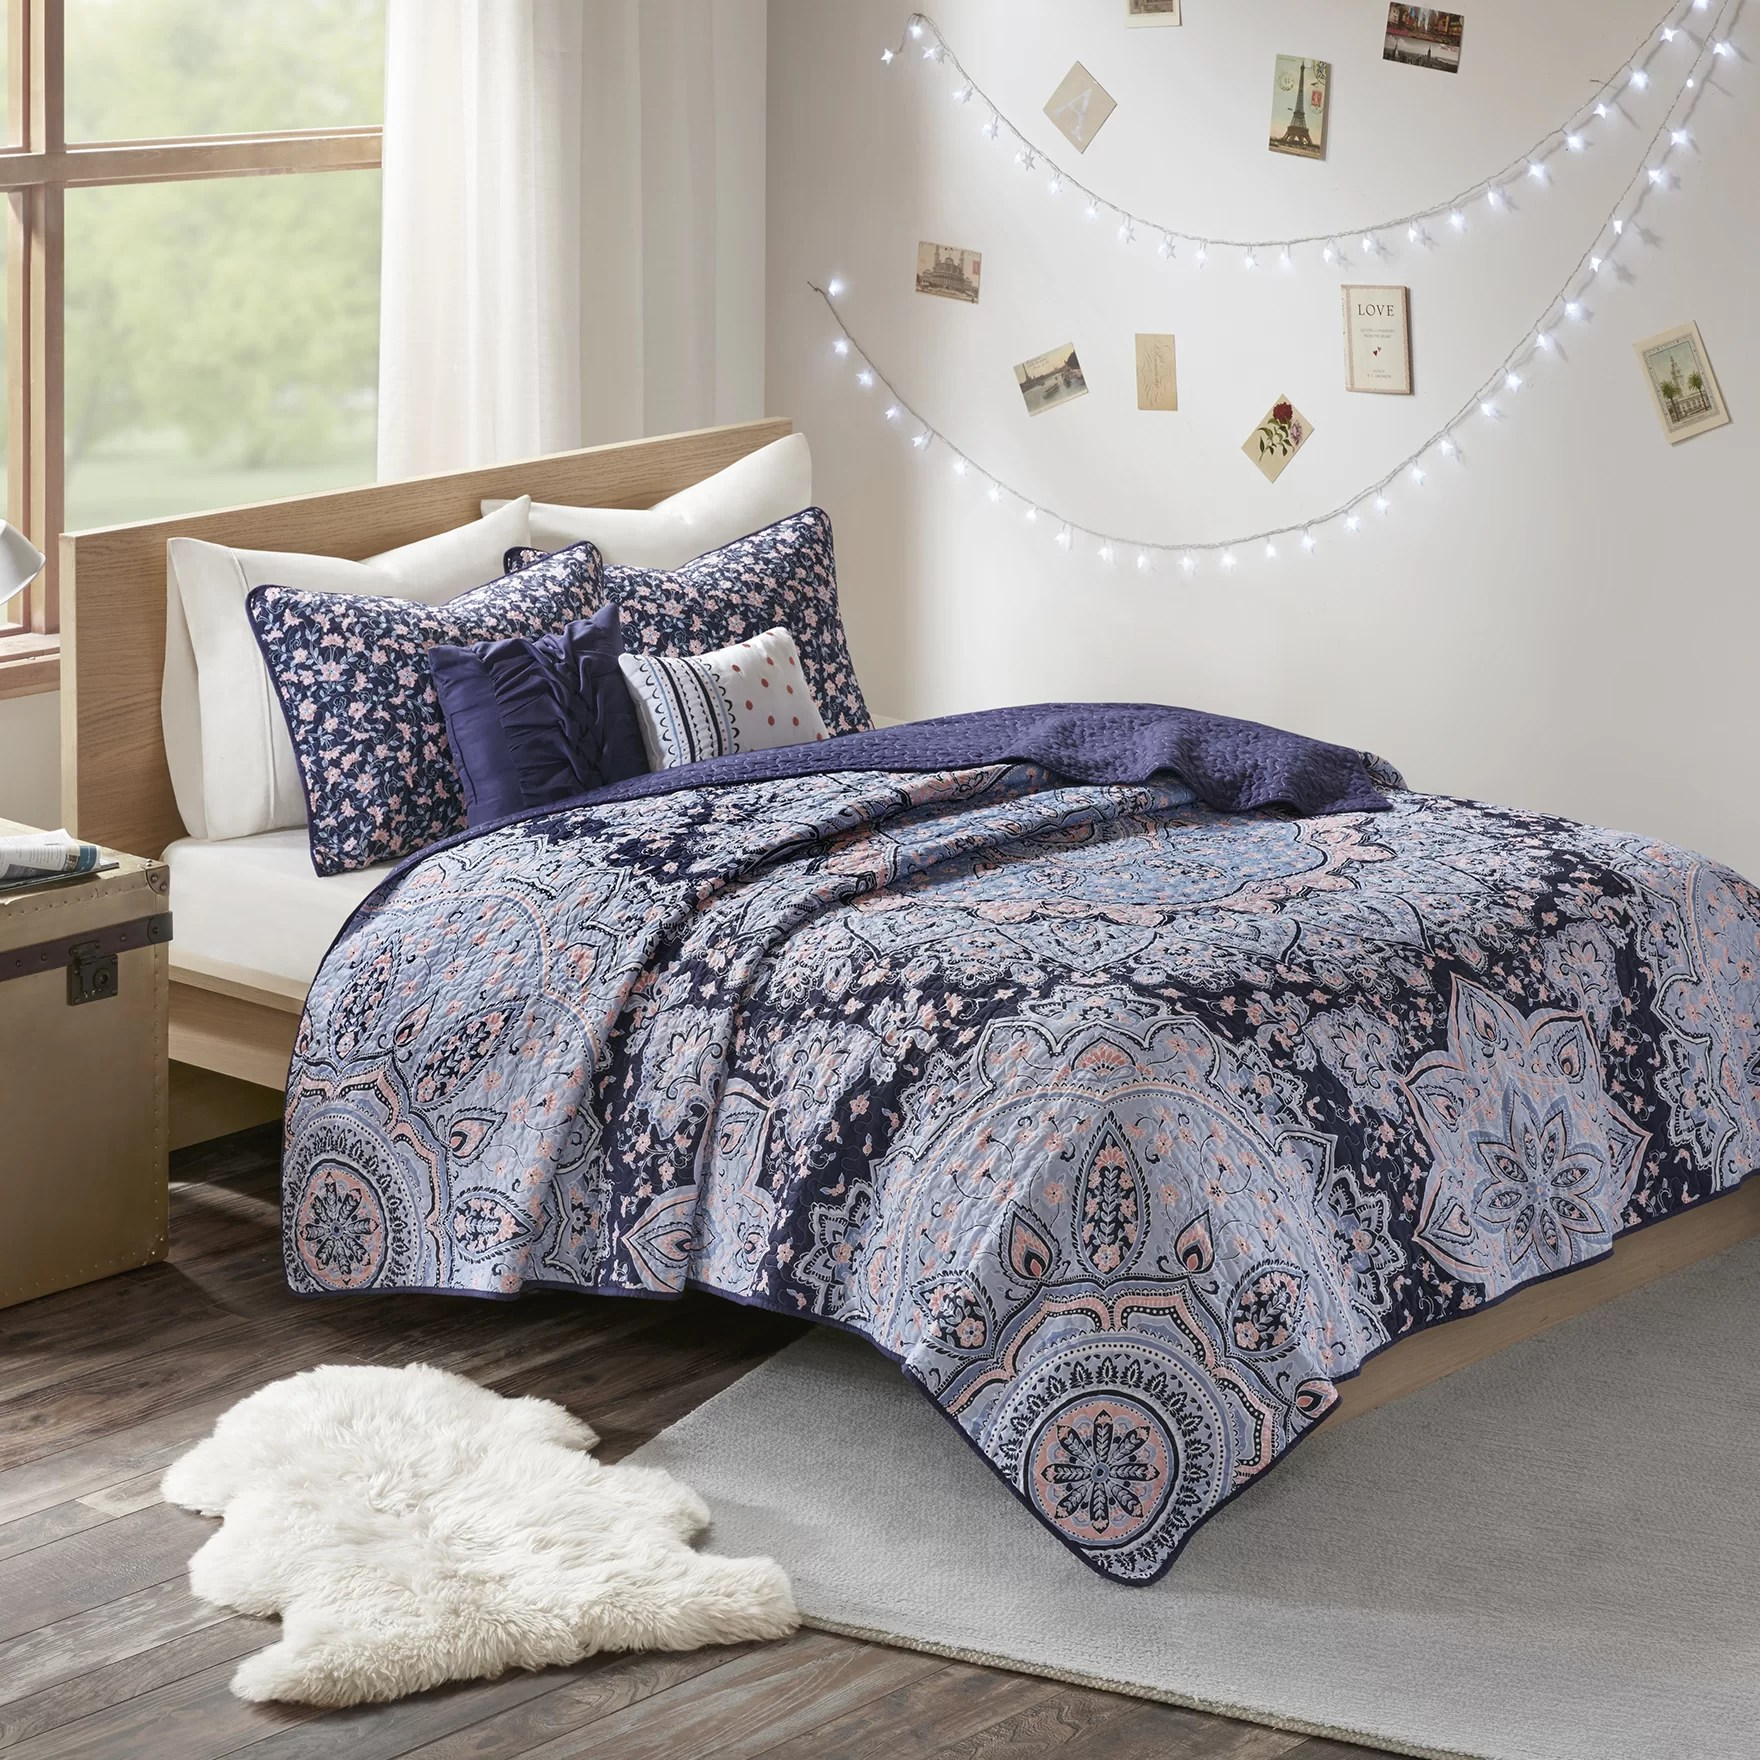 Bed Coverlet Vanmatre Boho Coverlet Set